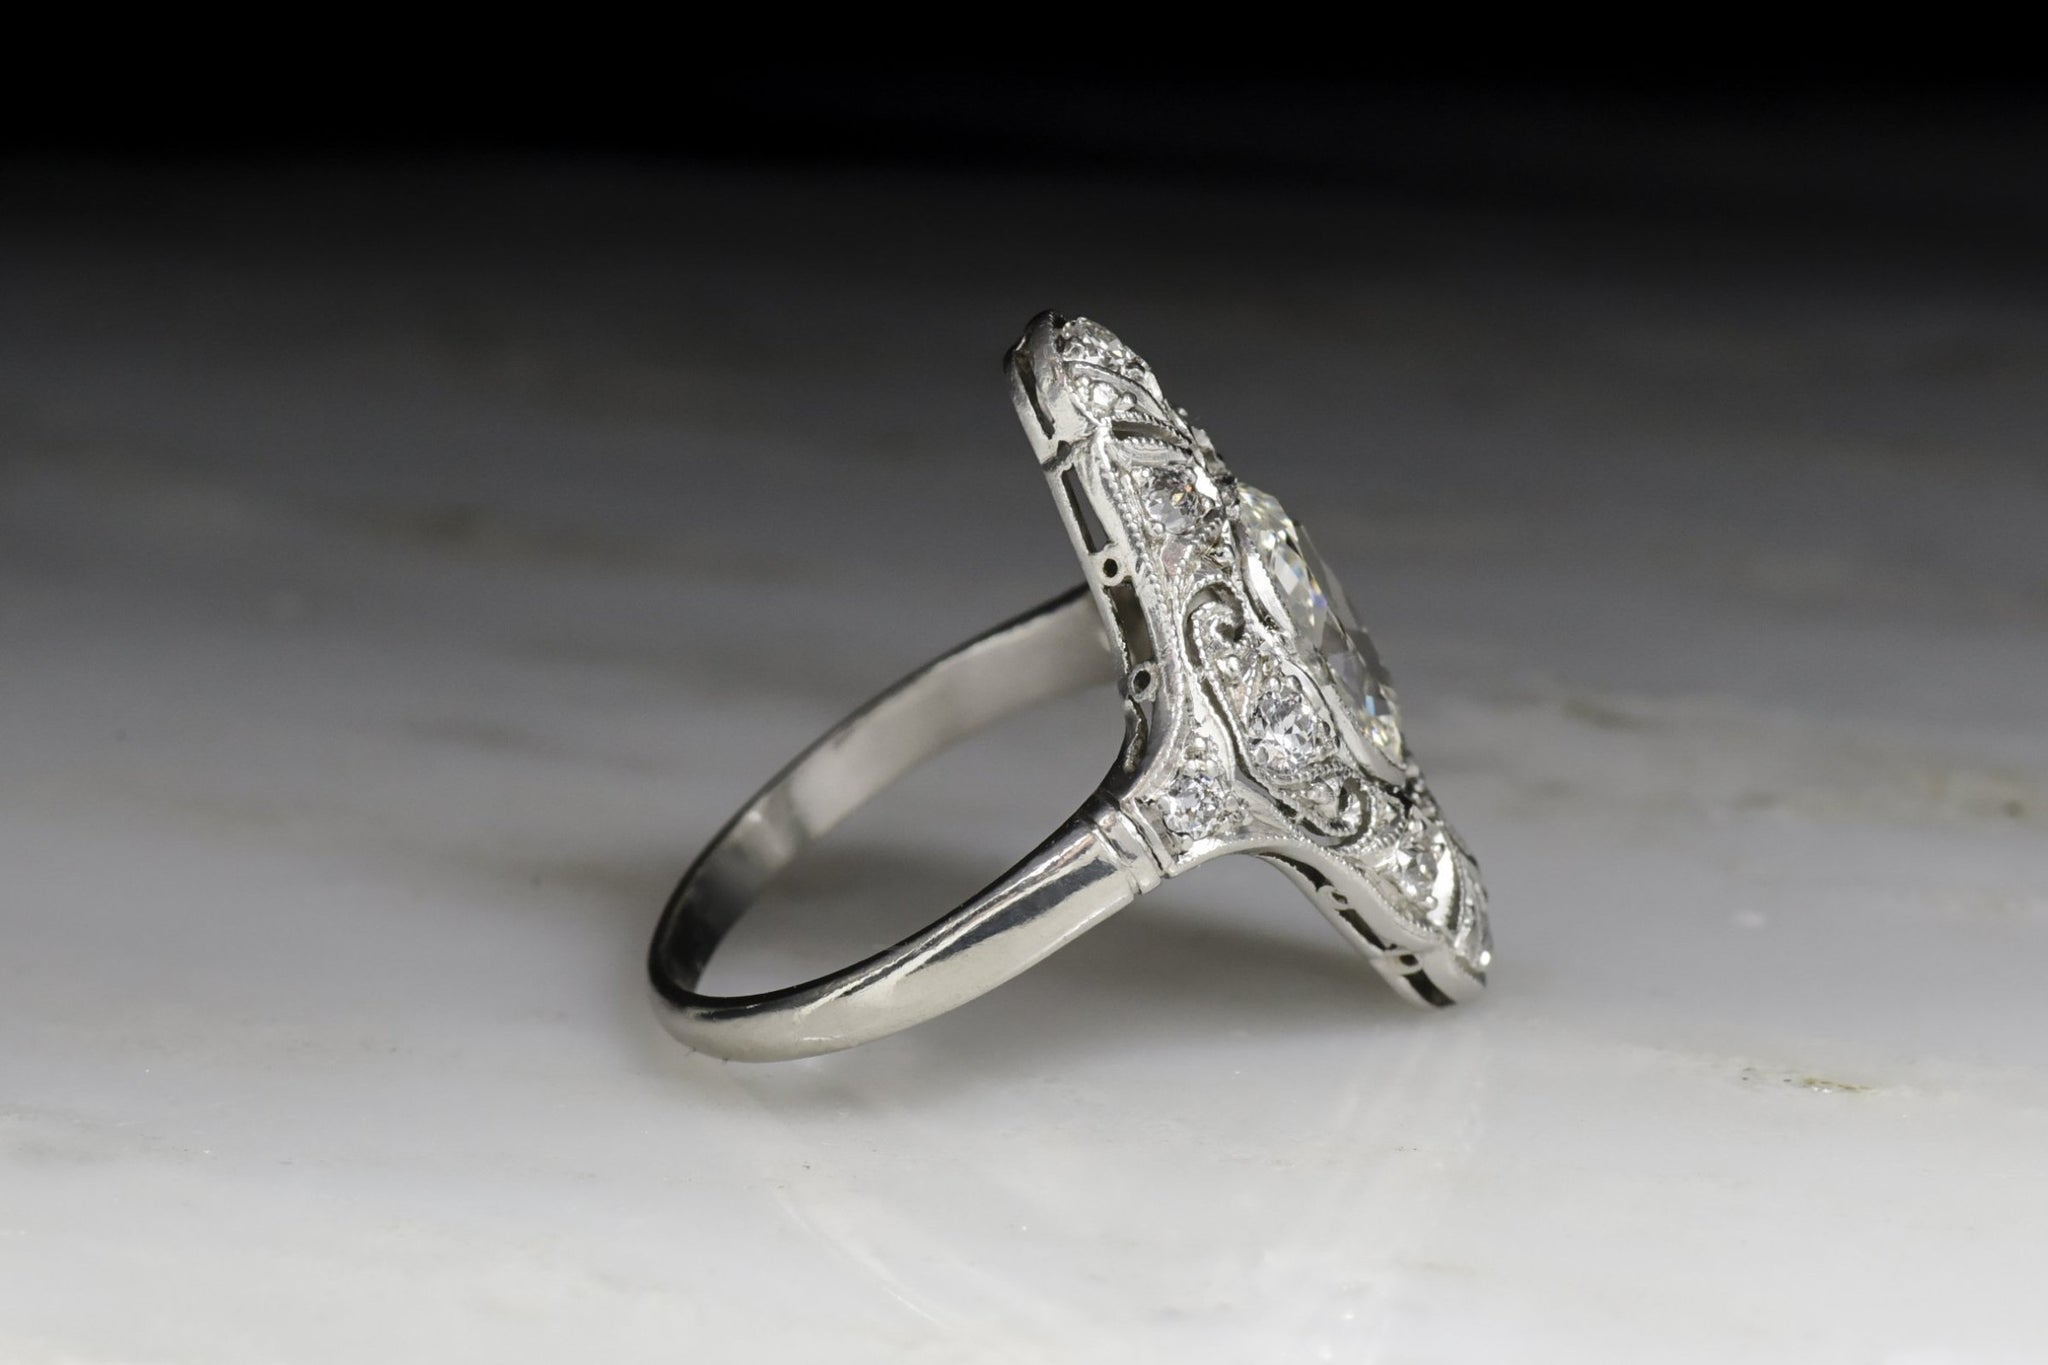 with carat antique ring diamond european center deco cut platinum old art sale products engagement vintage retro